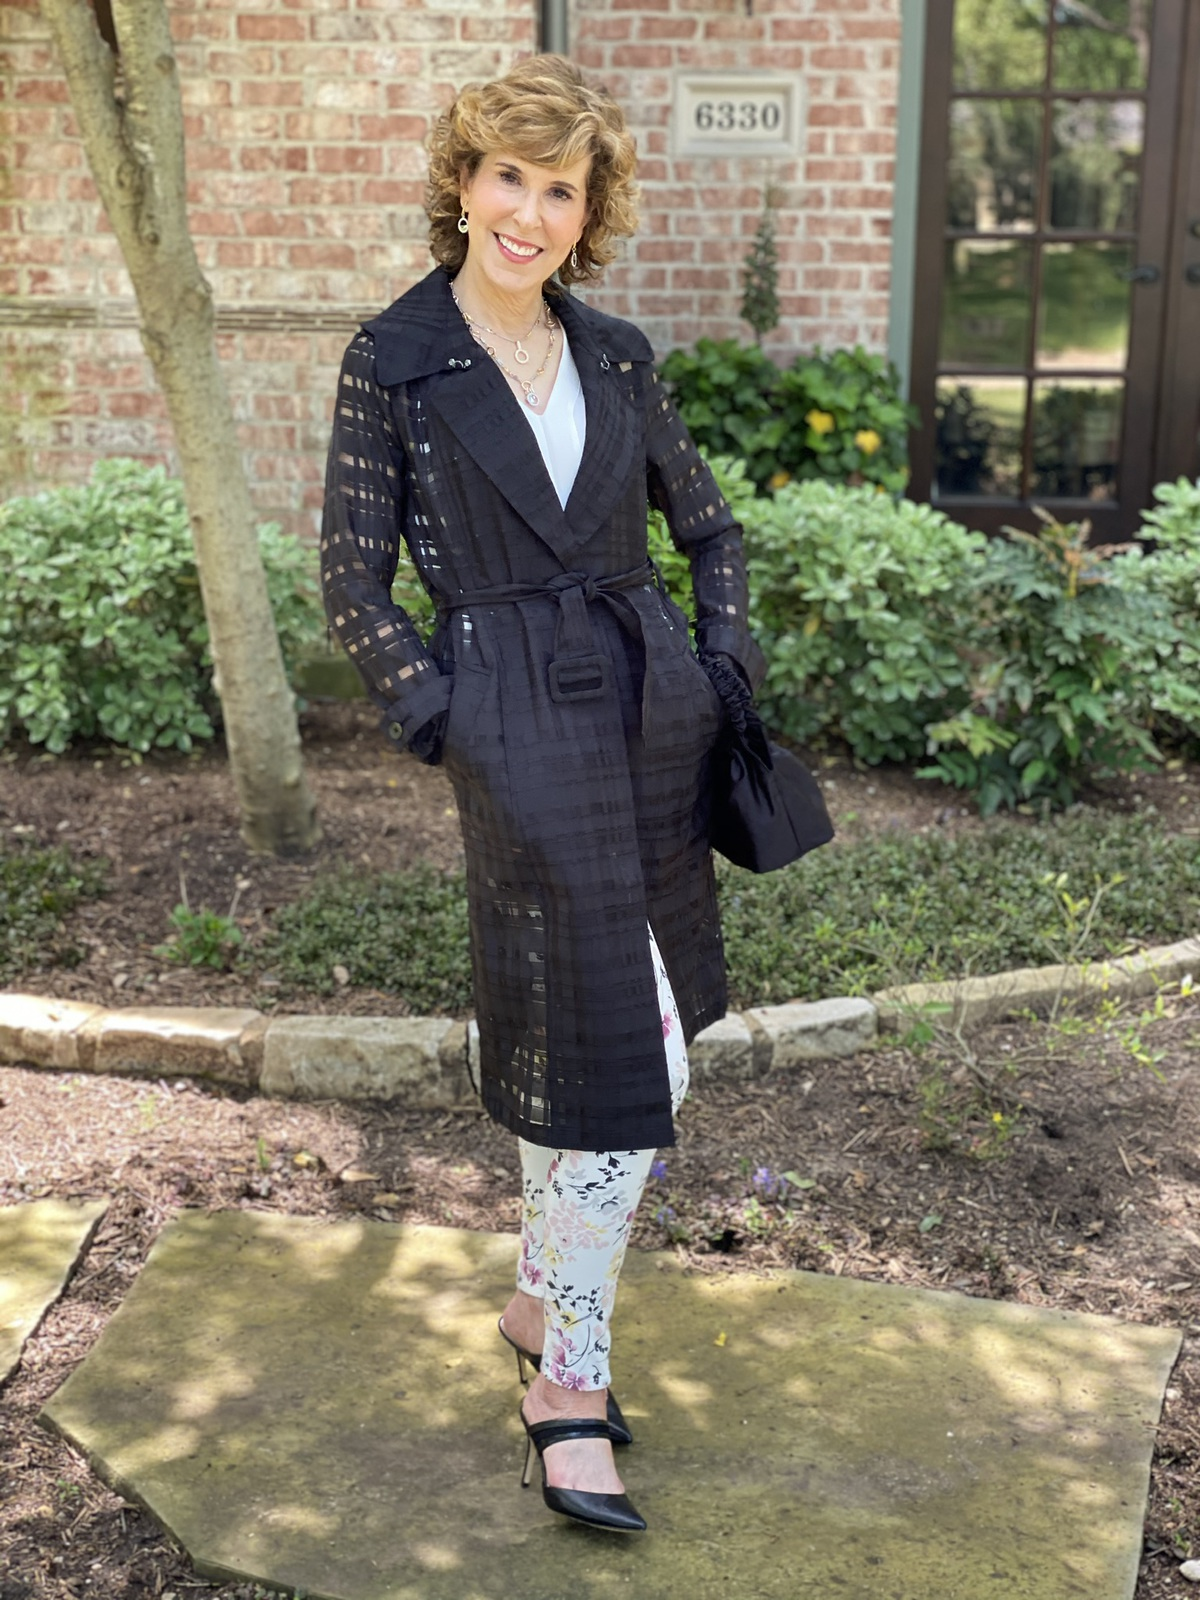 woman in black trench coat and floral pants standing in front yard